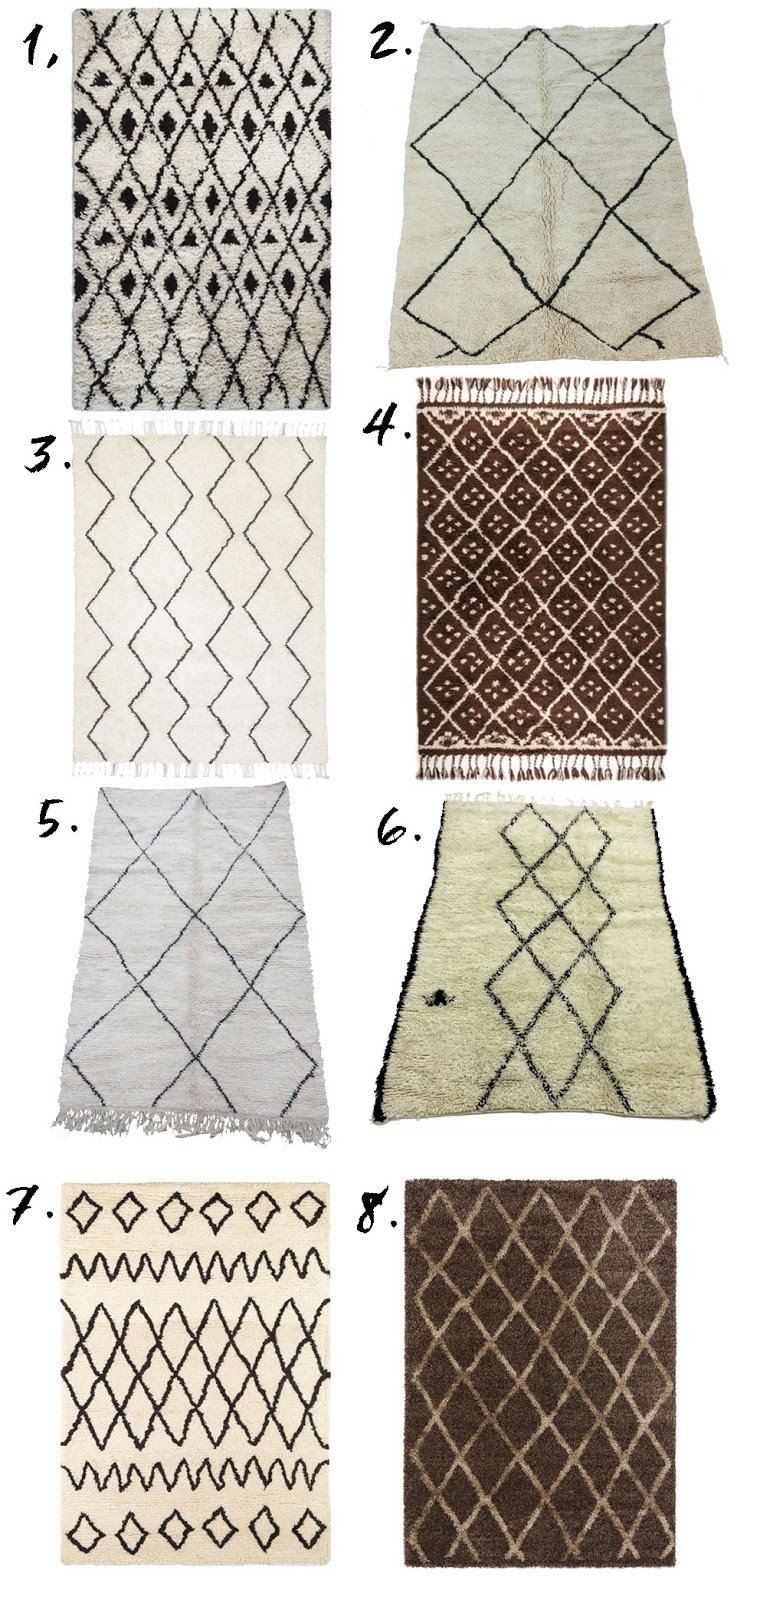 Beni Ourain Rugs - French For Pineapple Blog